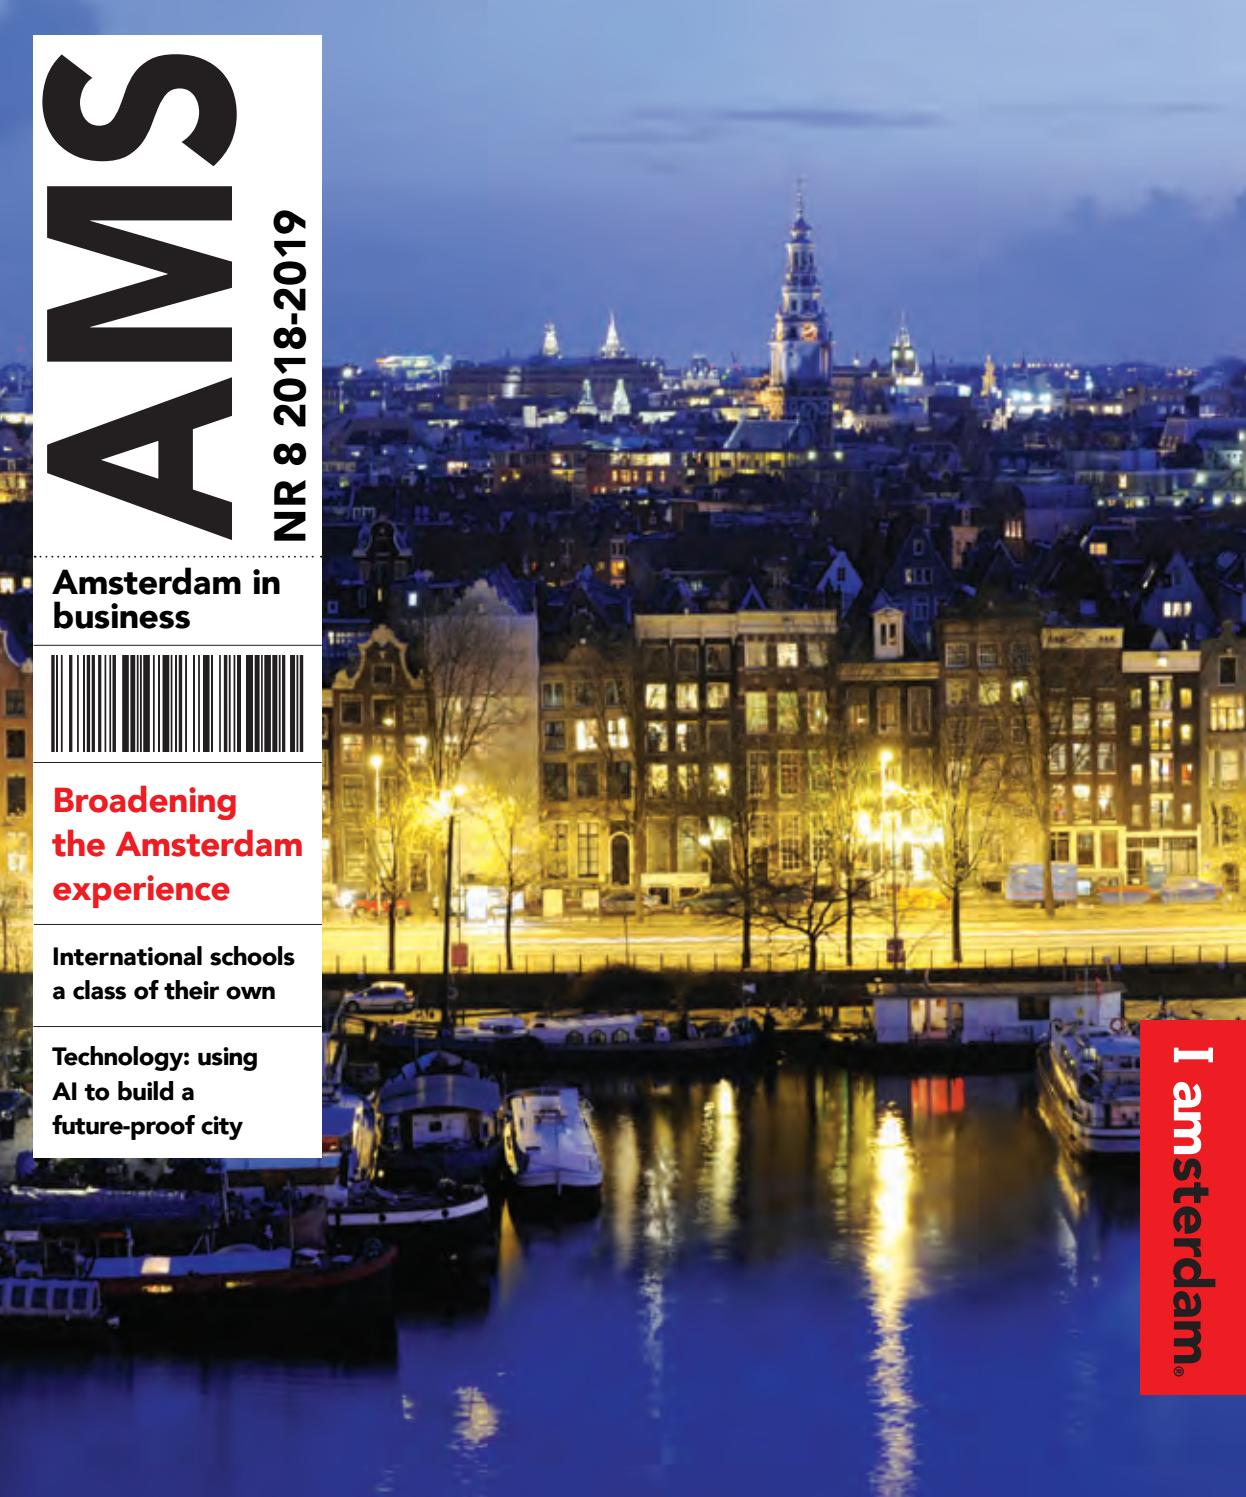 dd77bf51d33 AMS 8 2018-2019 by amsterdam partners - issuu